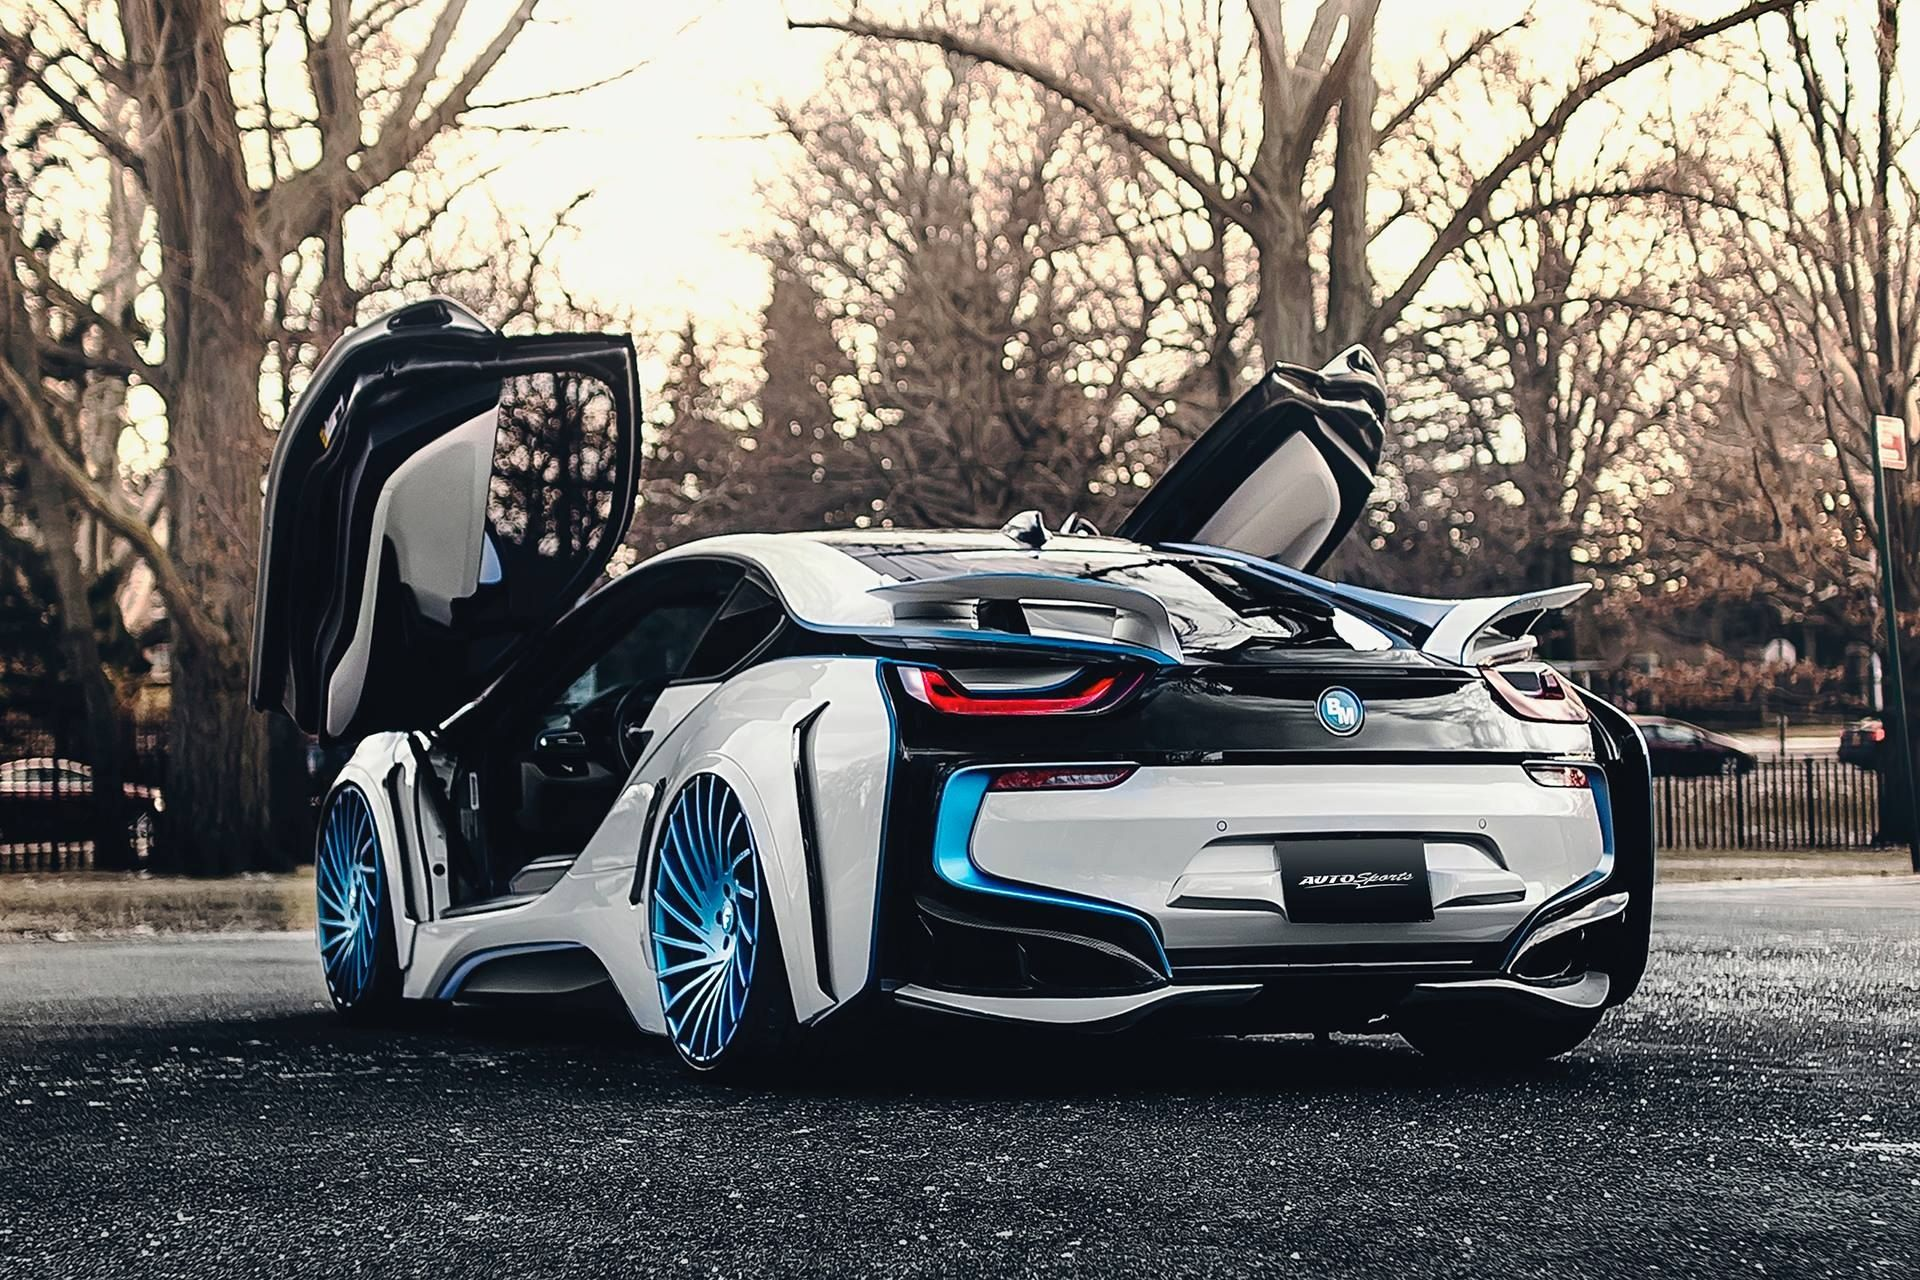 Spaceship In The Form Of The Car Custom White Bmw I8 With Blue Accents In 2020 Bmw I8 Bmw Bmw I8 Black